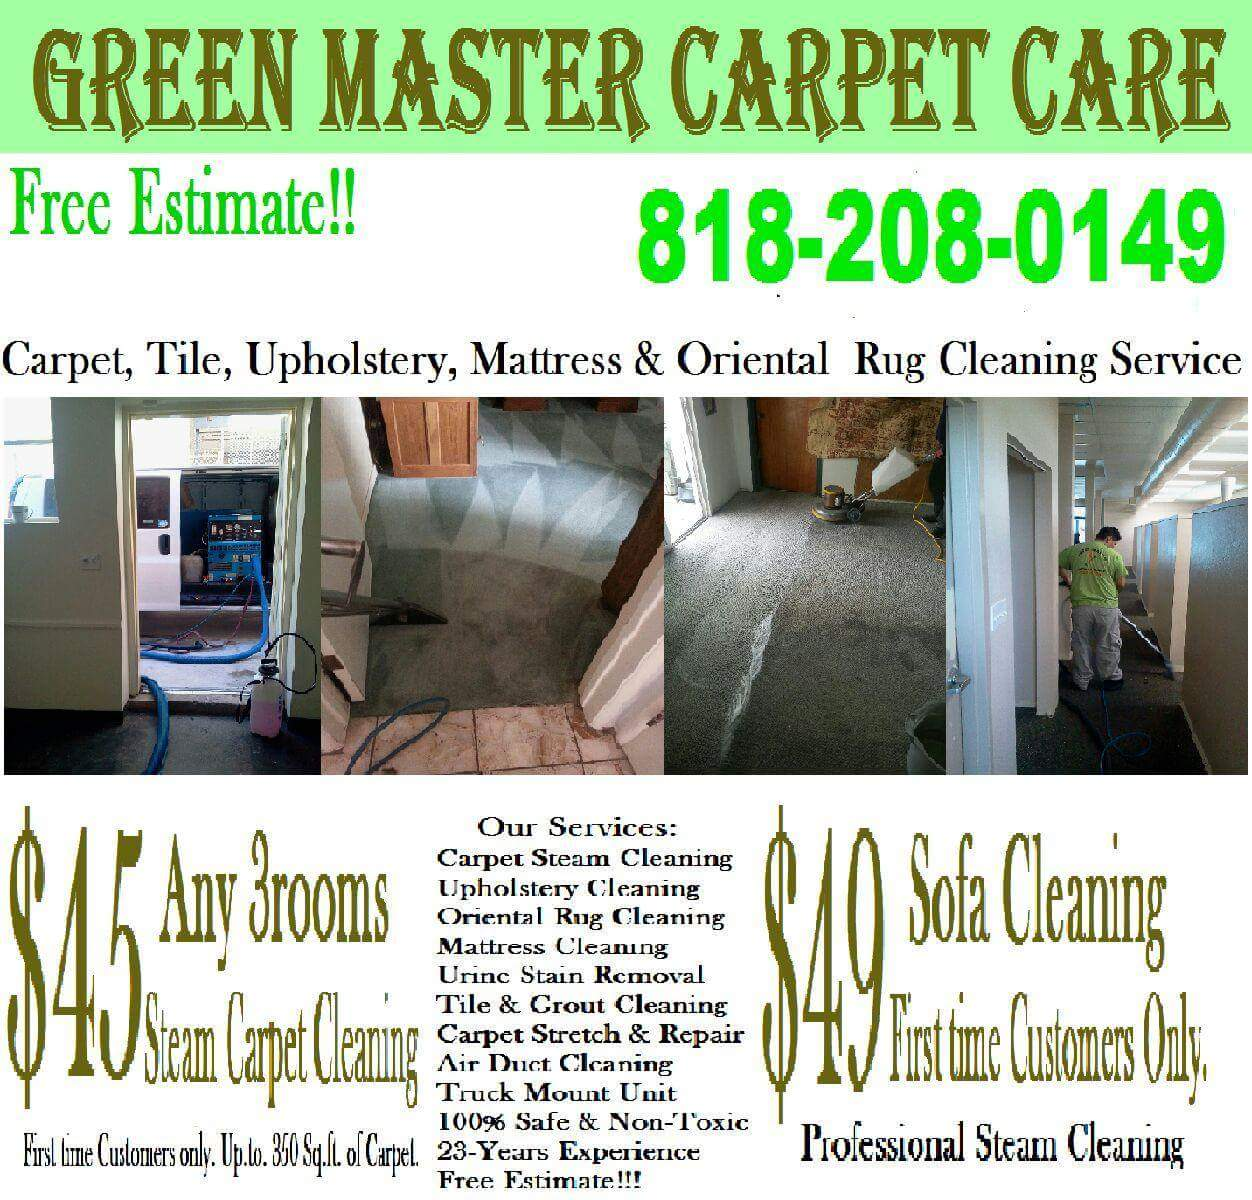 Green Master Carpet Care - (818) 208